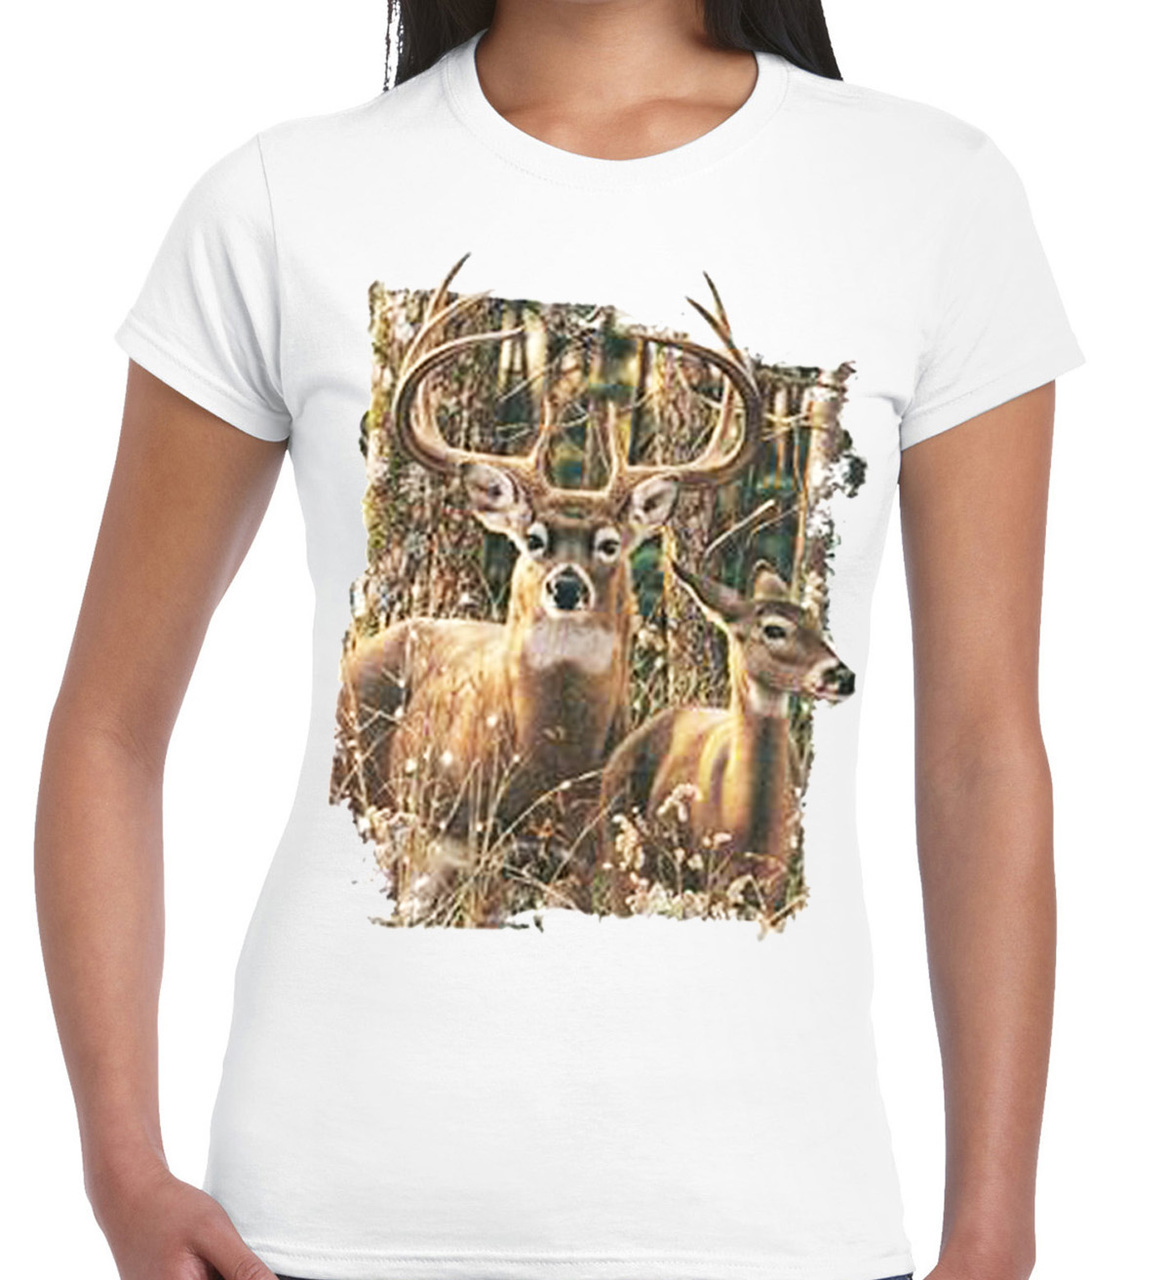 Buck & Doe Women's Short Sleeve T-Shirt